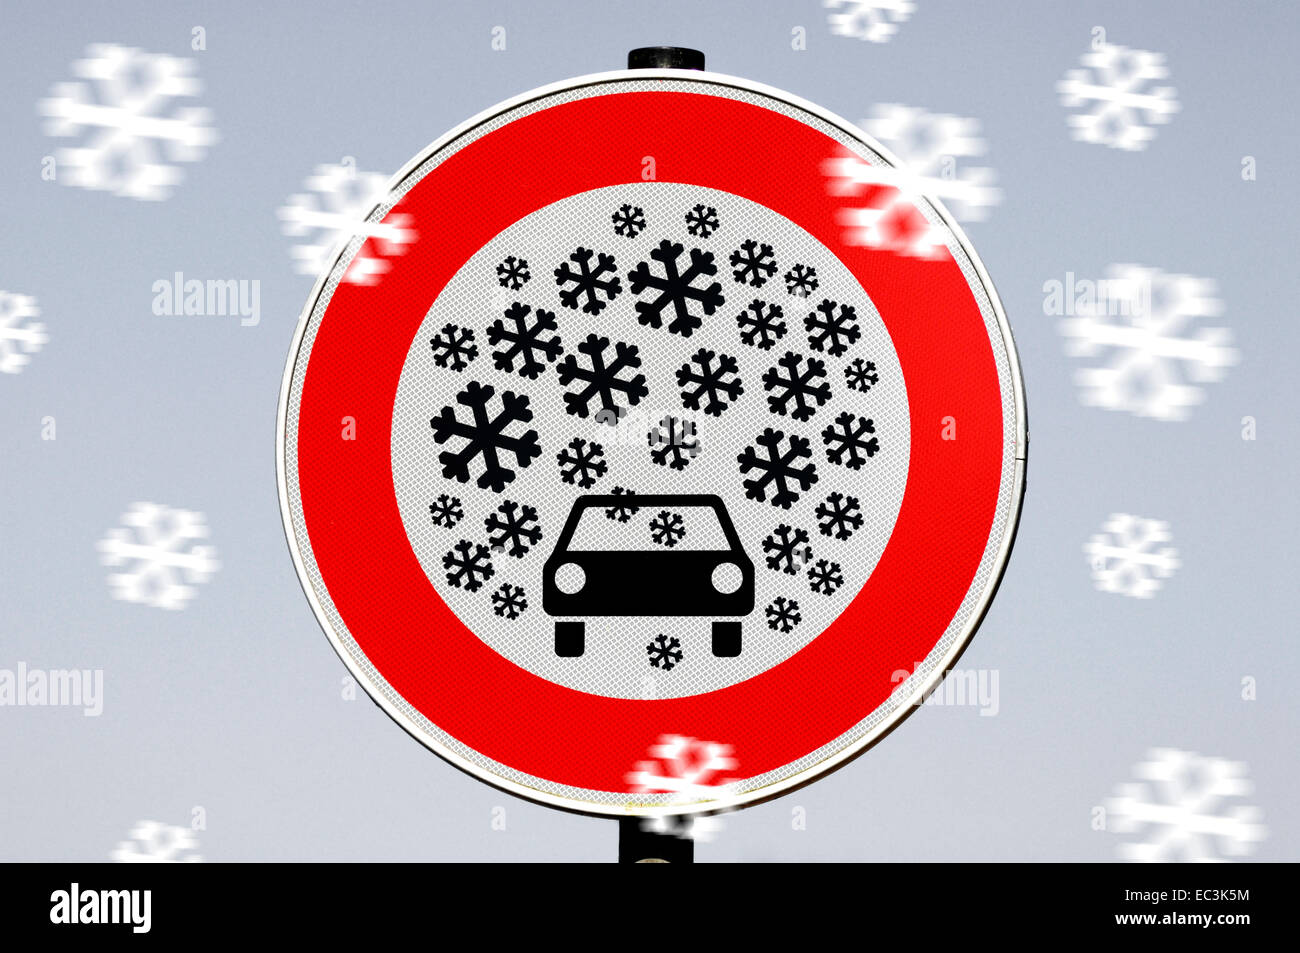 Traffic sign heavy snowfall, photo montage - Stock Image